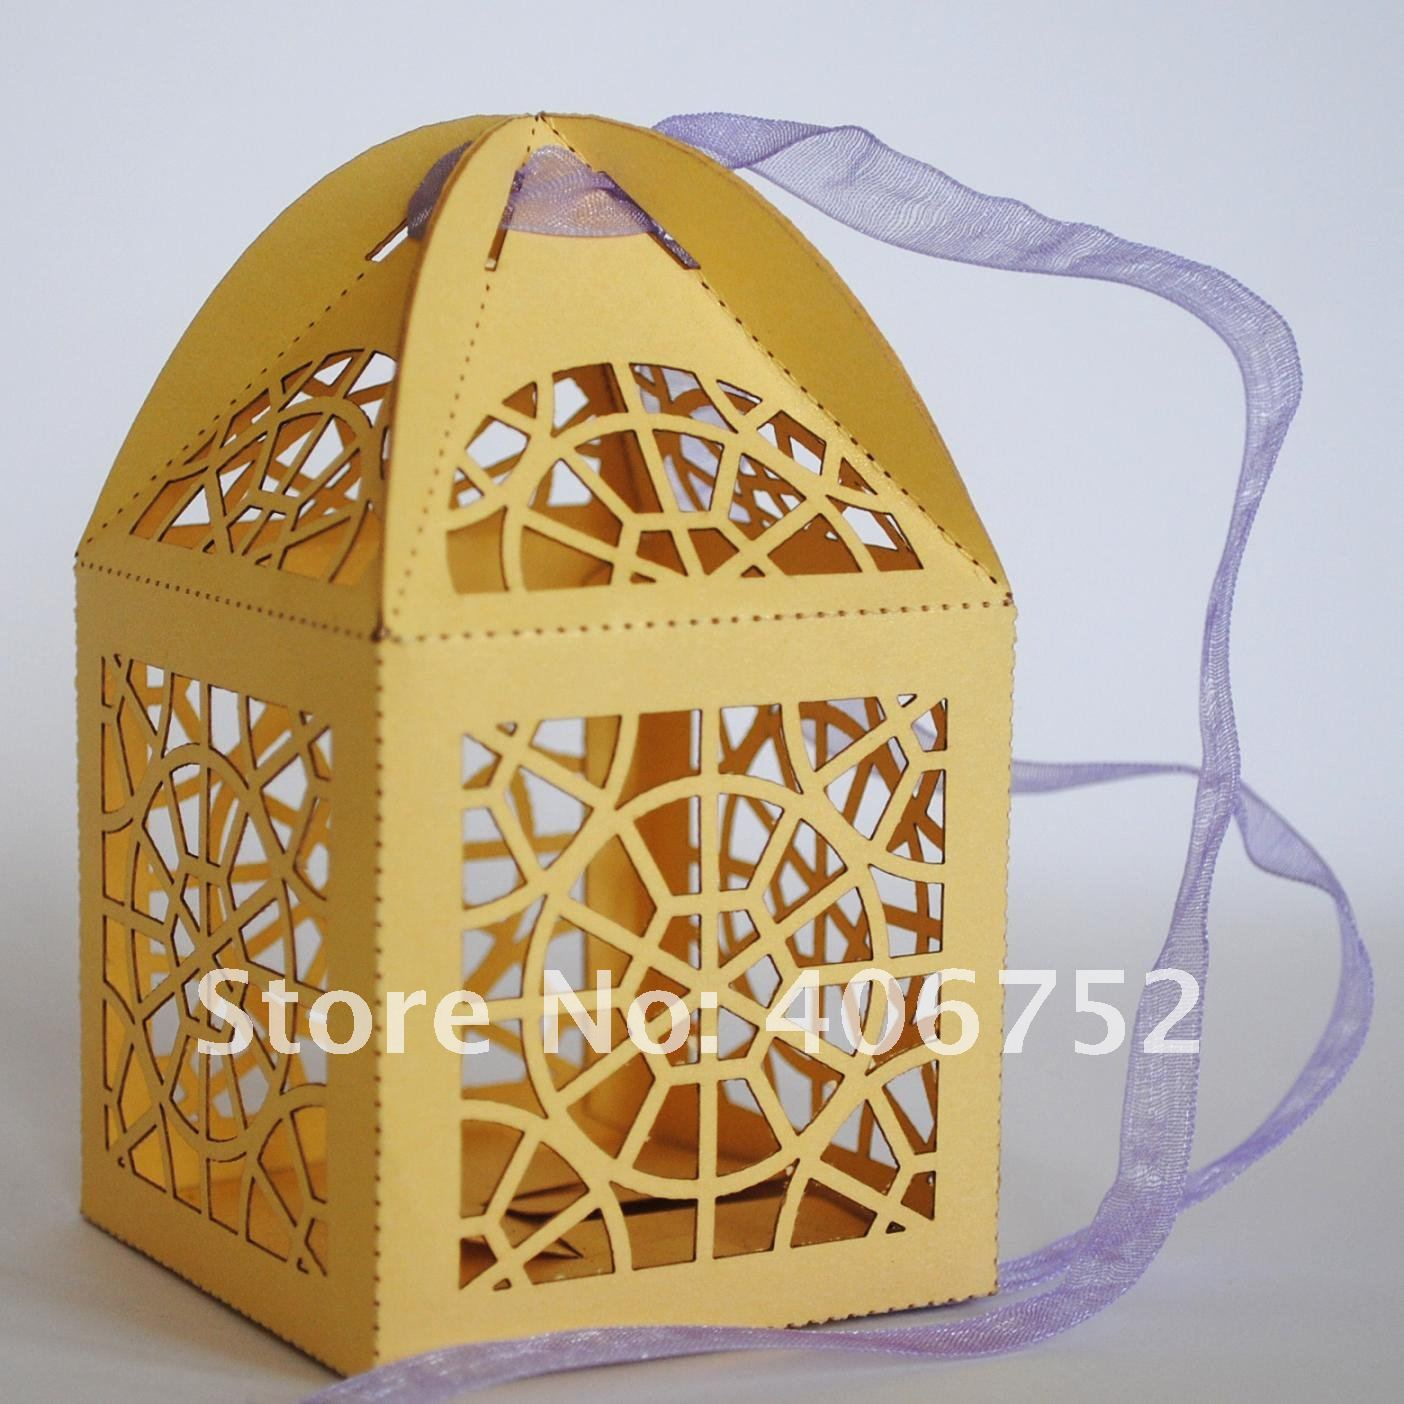 Laser cut custom cupcake boxes wholesale wedding box candy filled laser cut custom cupcake boxes wholesale wedding box candy filled box walmart christmas decorations in party favors from home garden on aliexpress junglespirit Choice Image